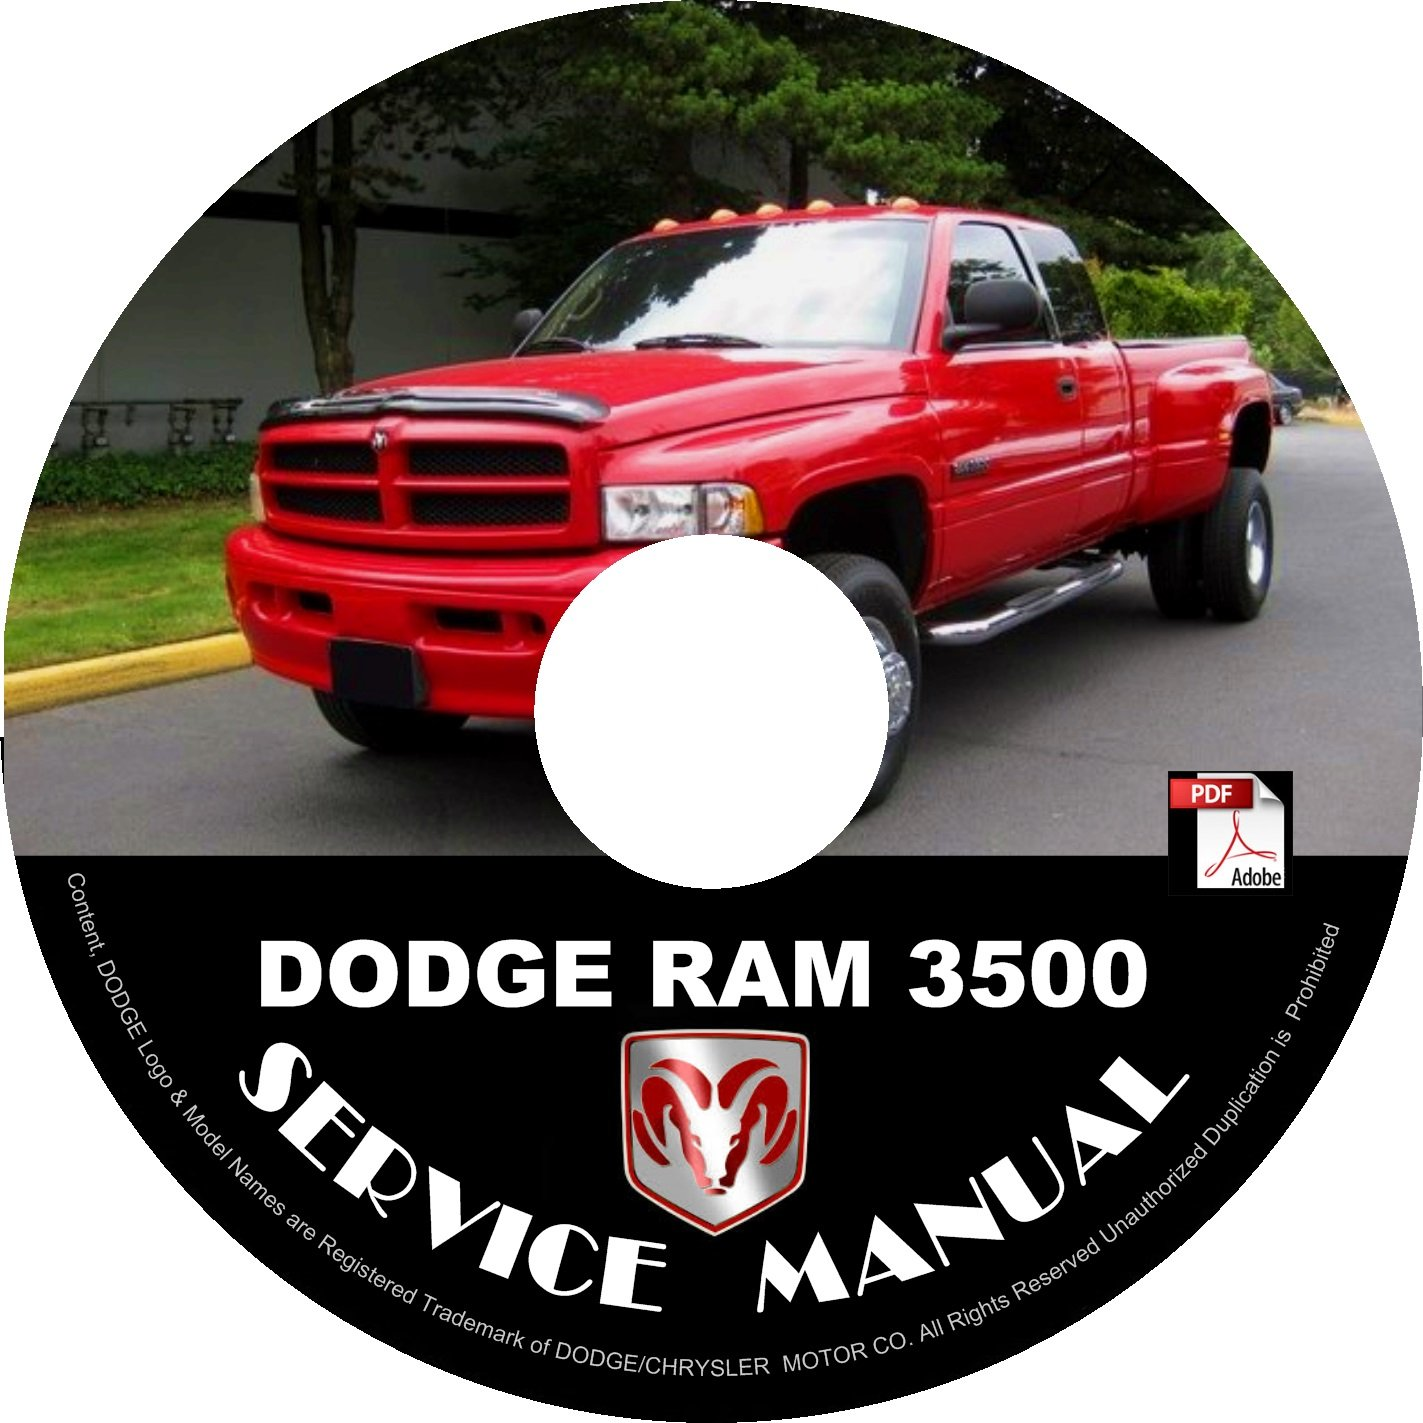 1996 Dodge RAM 3500 Factory Service Repair Shop Manual on CD Fix Repair Rebuilt